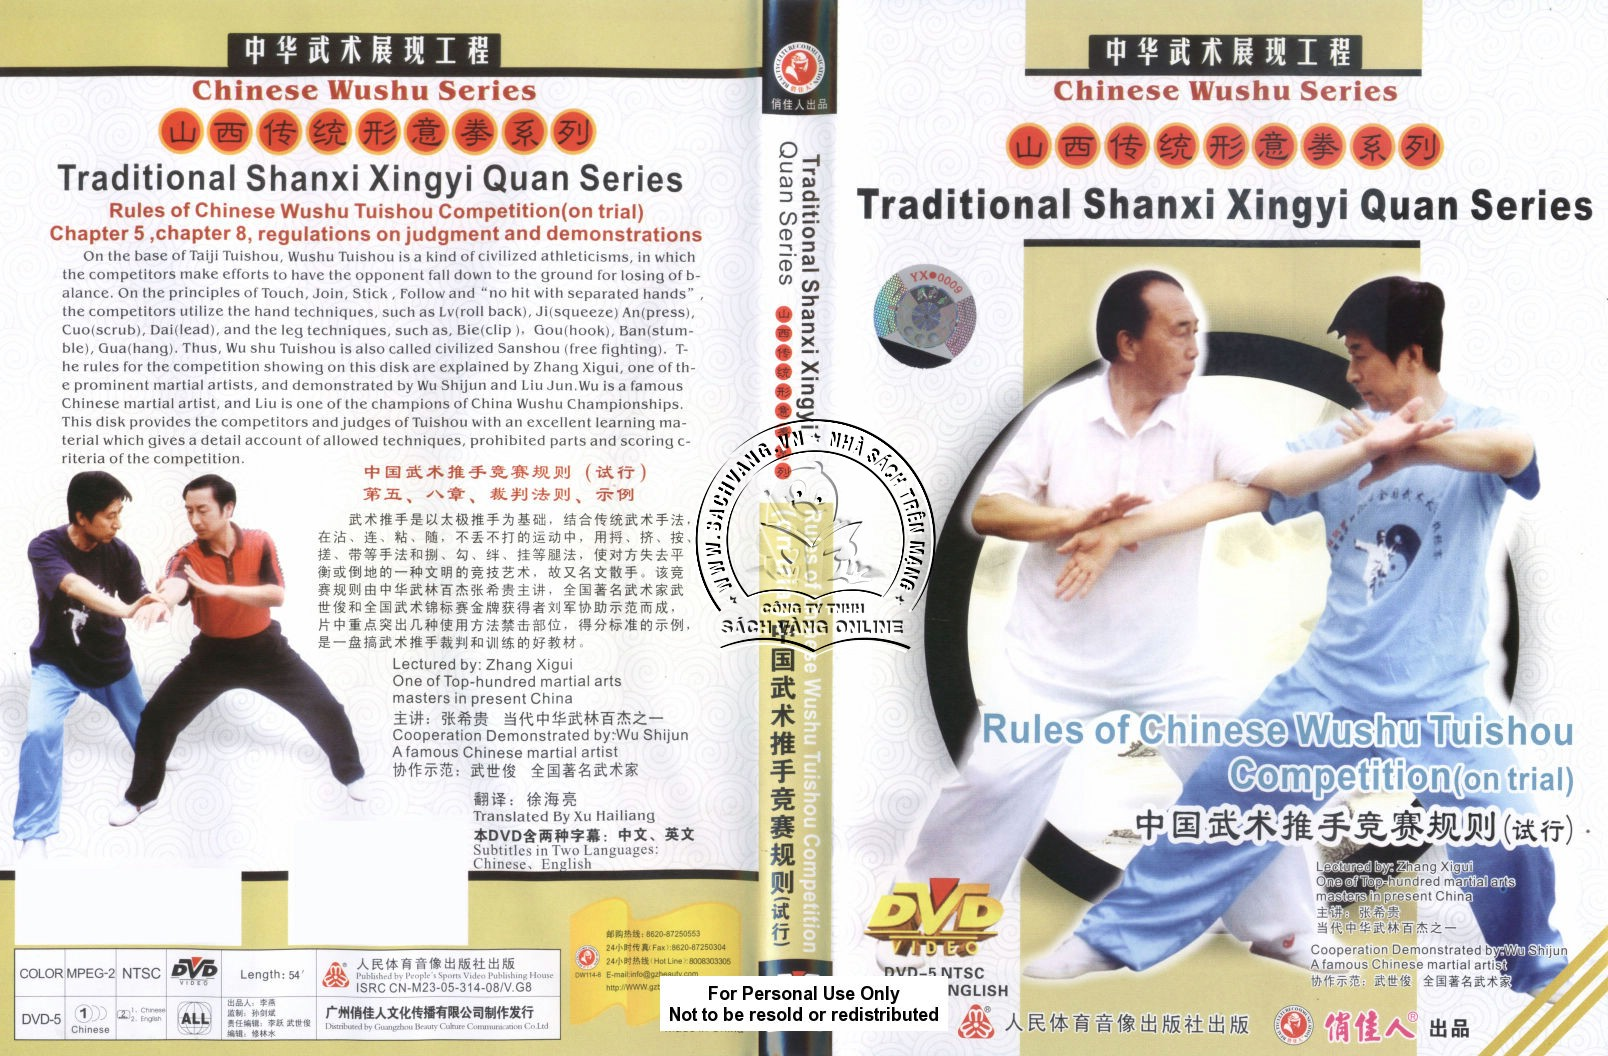 08 - Rules of Chinese Wushu Tuishou Competition